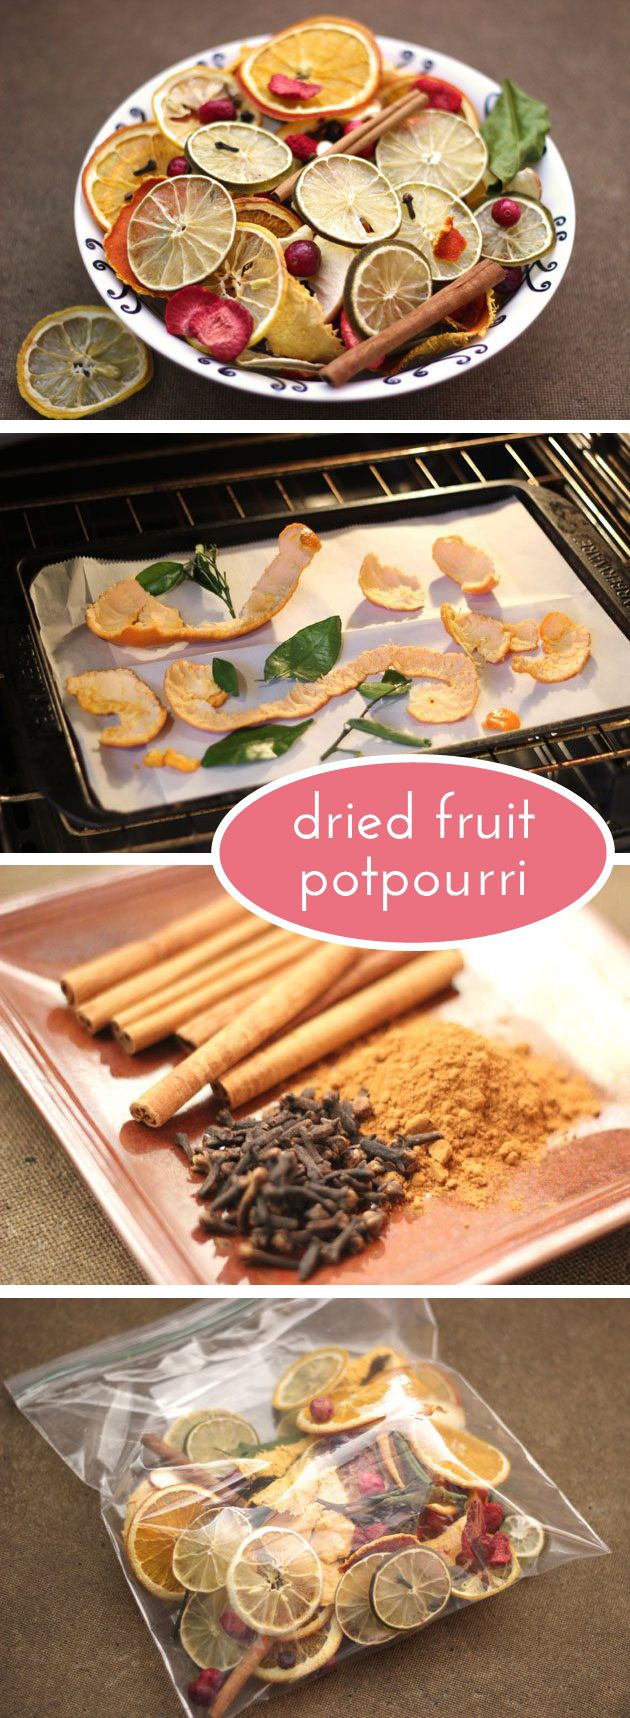 Dried fruit potpourri imparts a zest that fills your home with a crisp, fresh scent perfect for spring! Here's how to best dry your fruit: http://www.ehow.com/how_6385743_make-potpourri-out-dried-fruit.html?utm_source=pinterest.com&utm_medium=referral&utm_content=inline&utm_campaign=fanpage